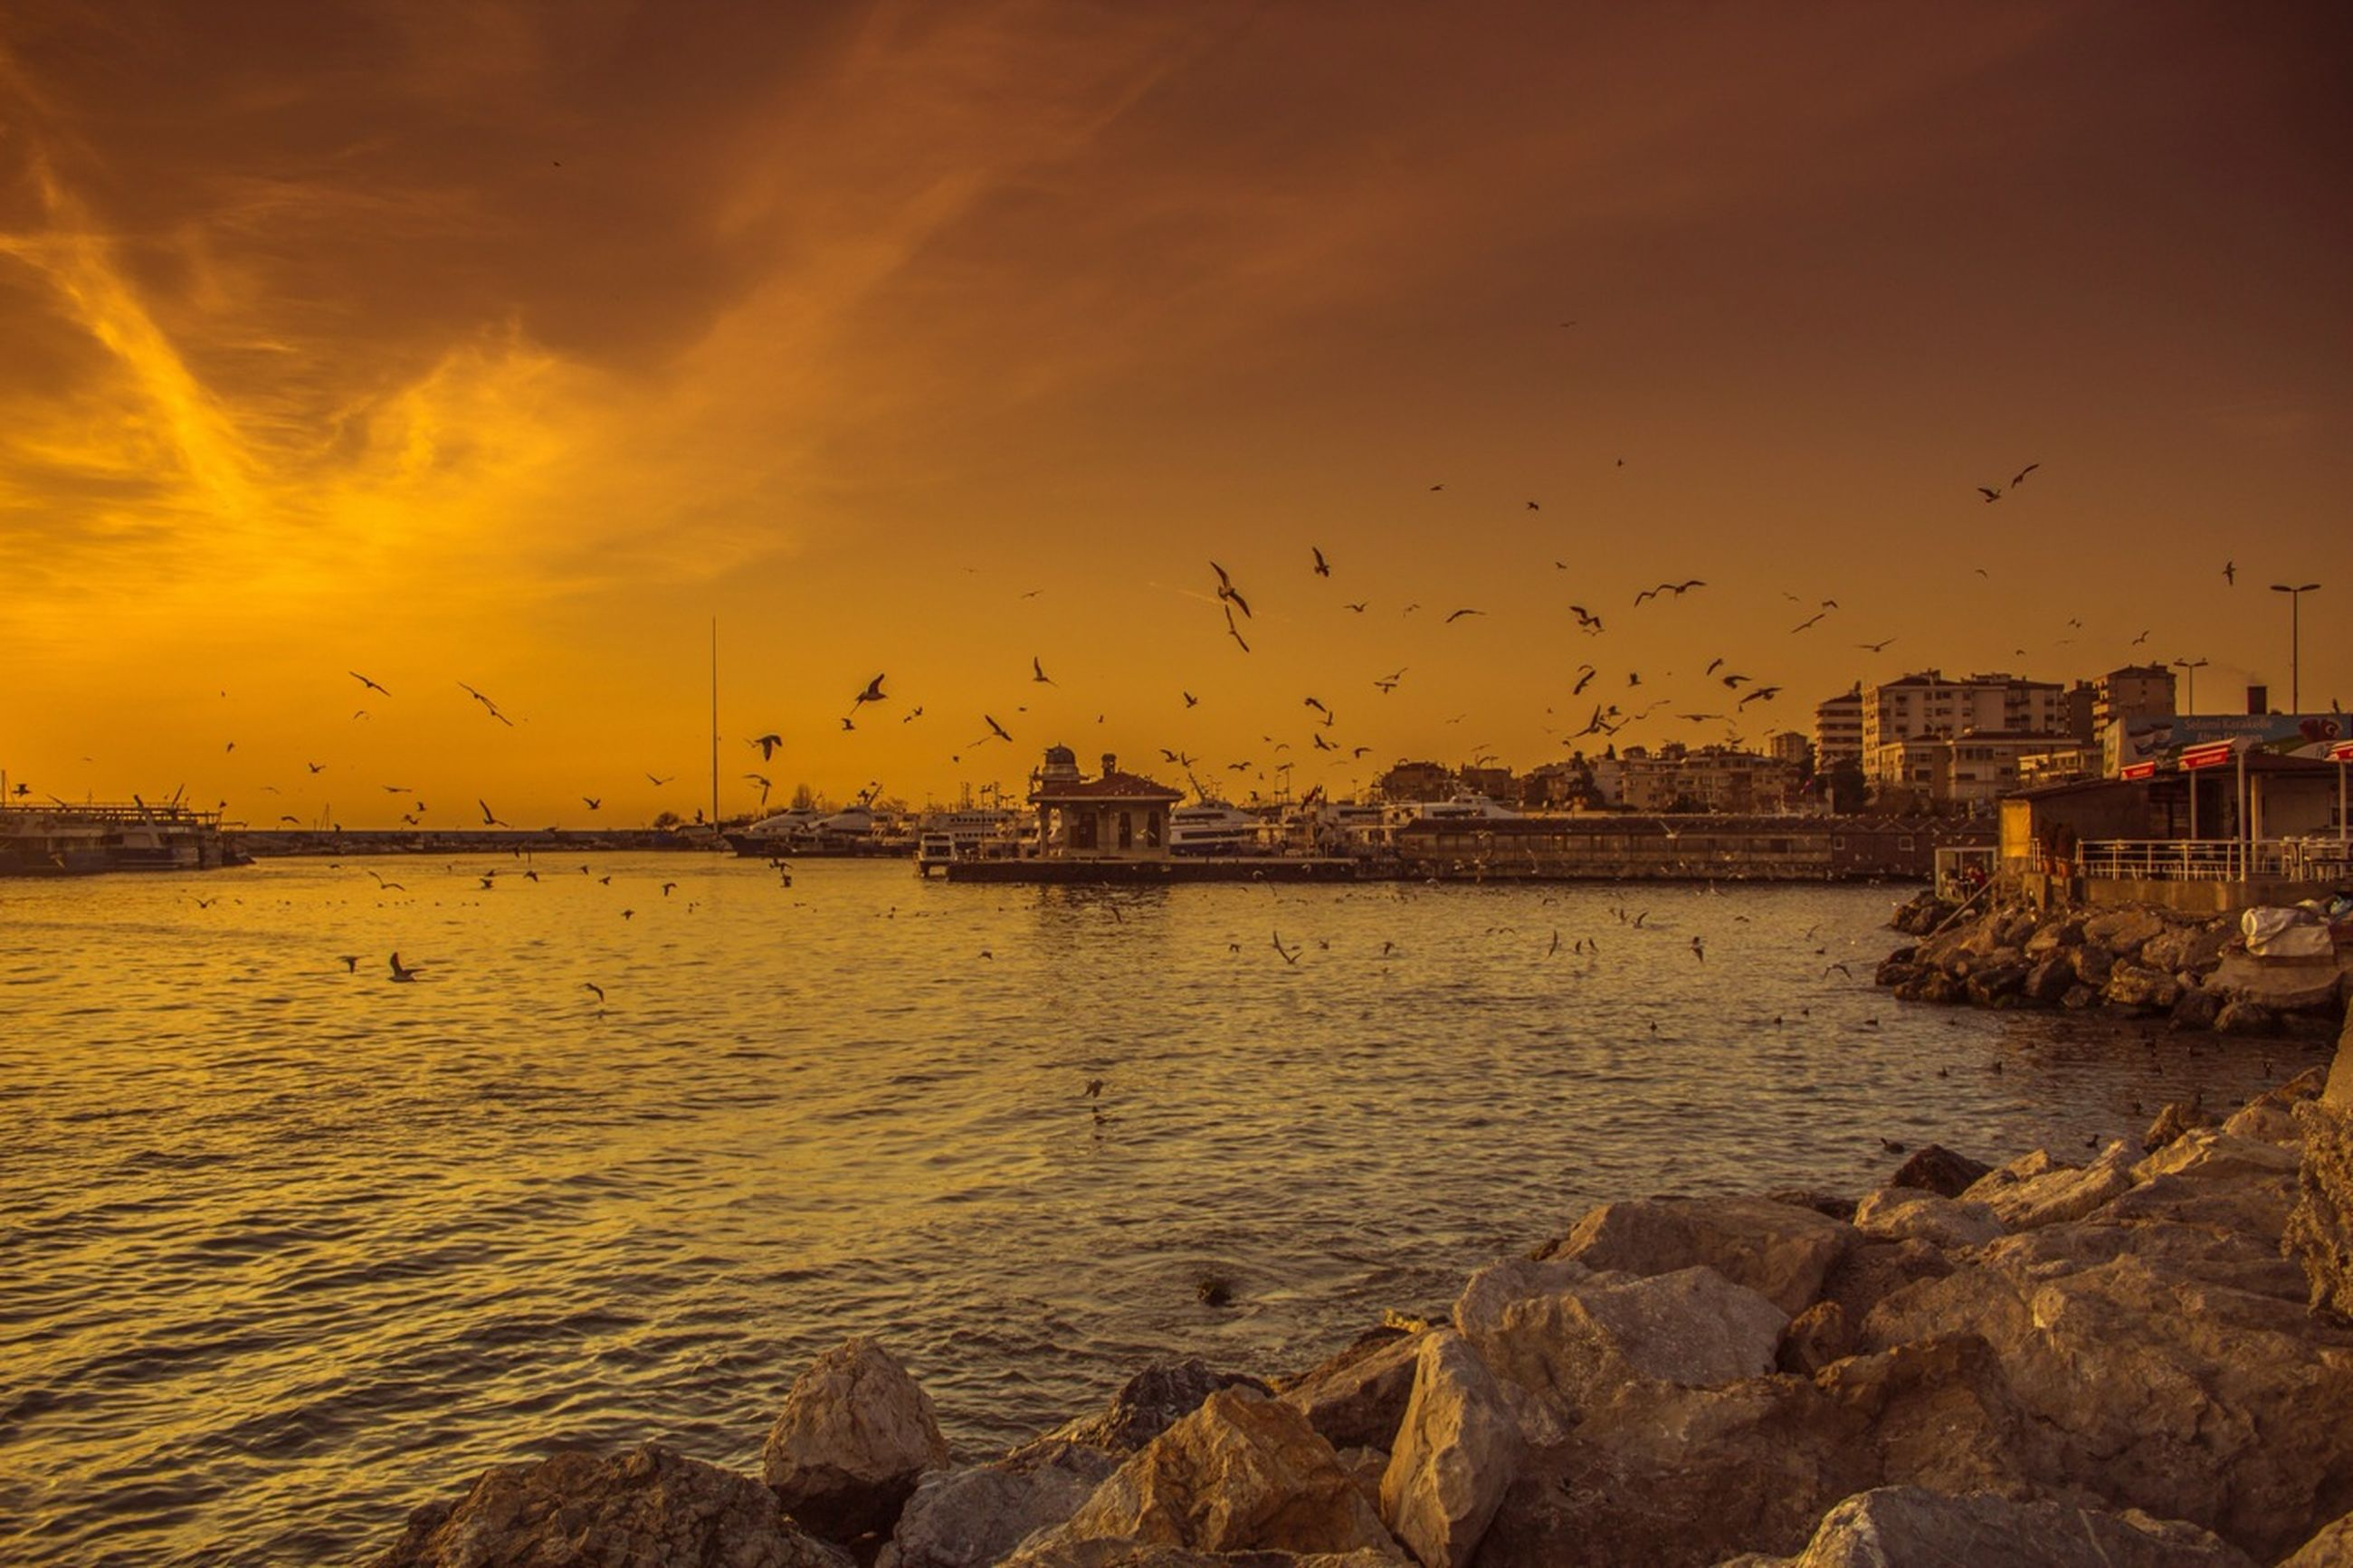 sunset, bird, water, flying, sky, animal themes, orange color, animals in the wild, sea, wildlife, transportation, nautical vessel, scenics, building exterior, beauty in nature, cloud - sky, built structure, nature, silhouette, mode of transport